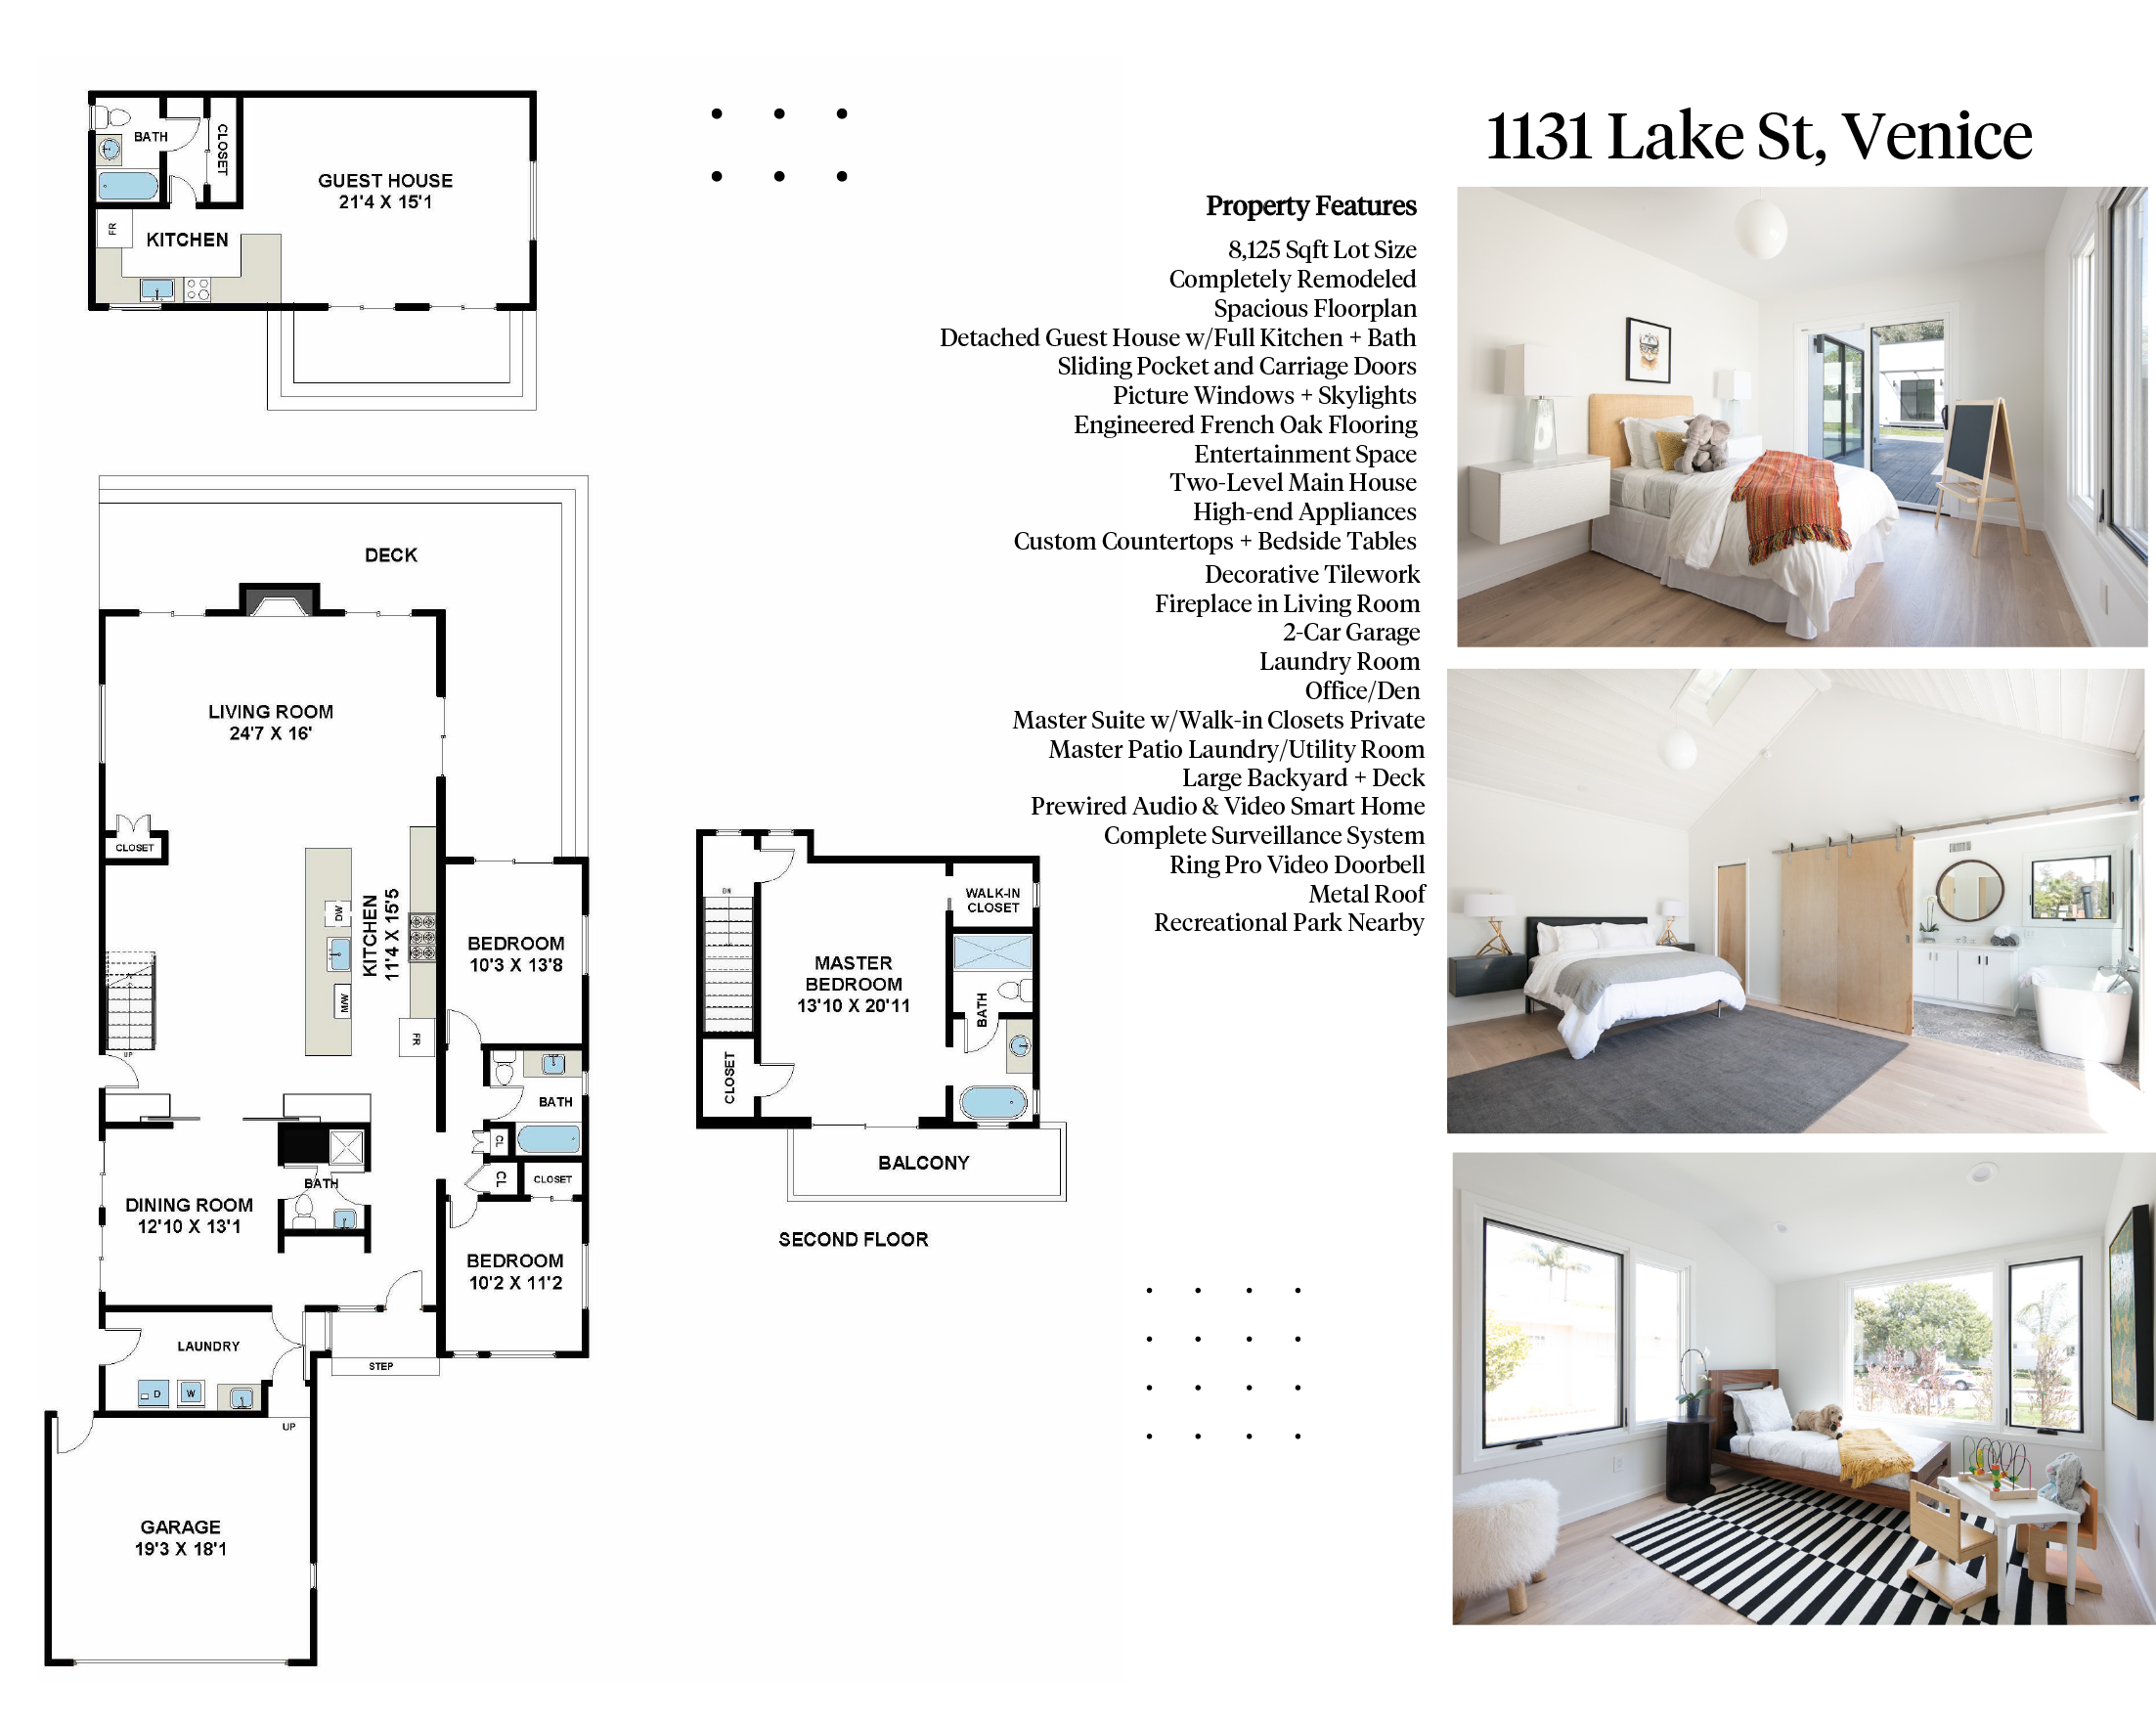 1131Lake_BrochureFloorplan.jpg